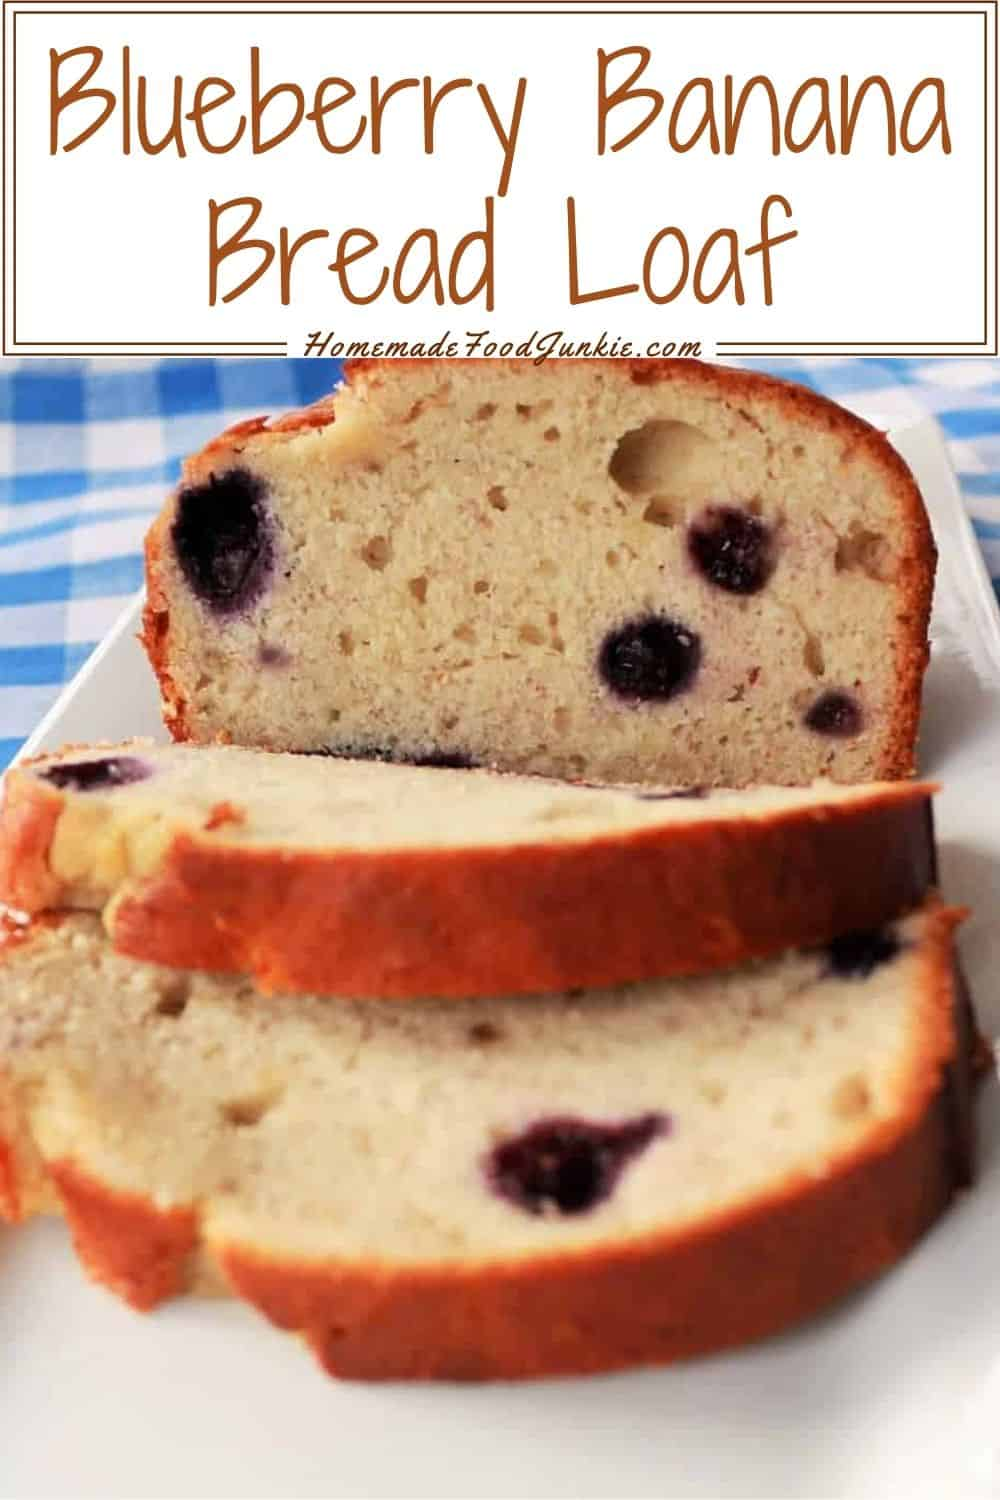 Blueberry banana bread loaf-pin image